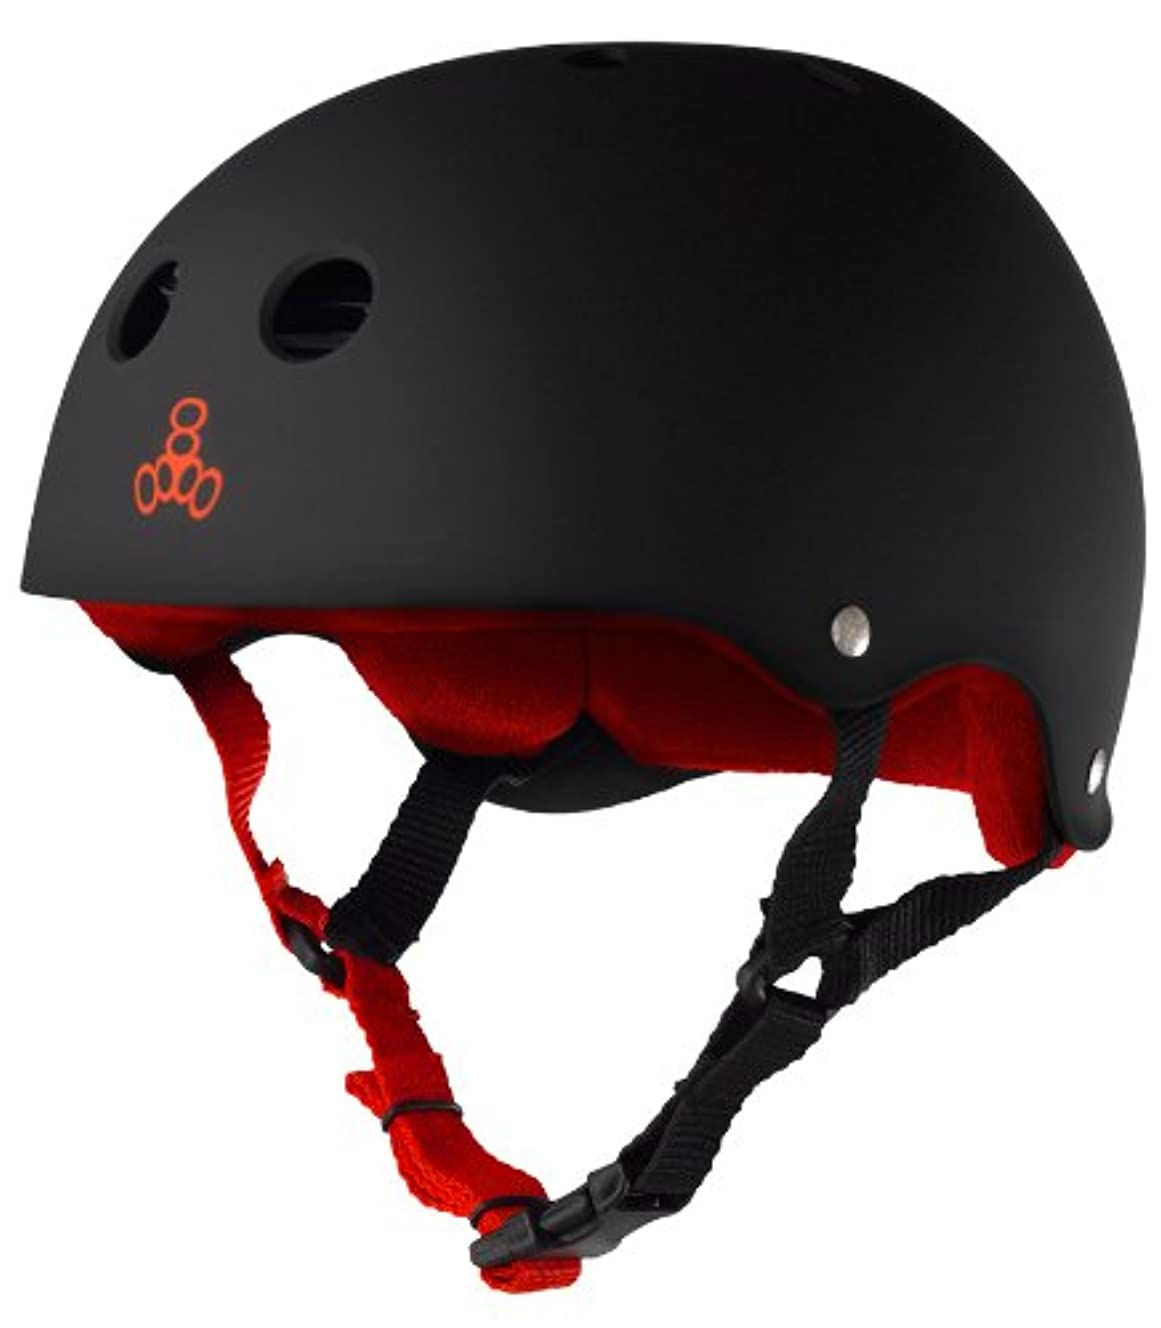 Triple 8 Sweatsaver Liner Skateboarding Helmet, Black Rubber w/ Red, M